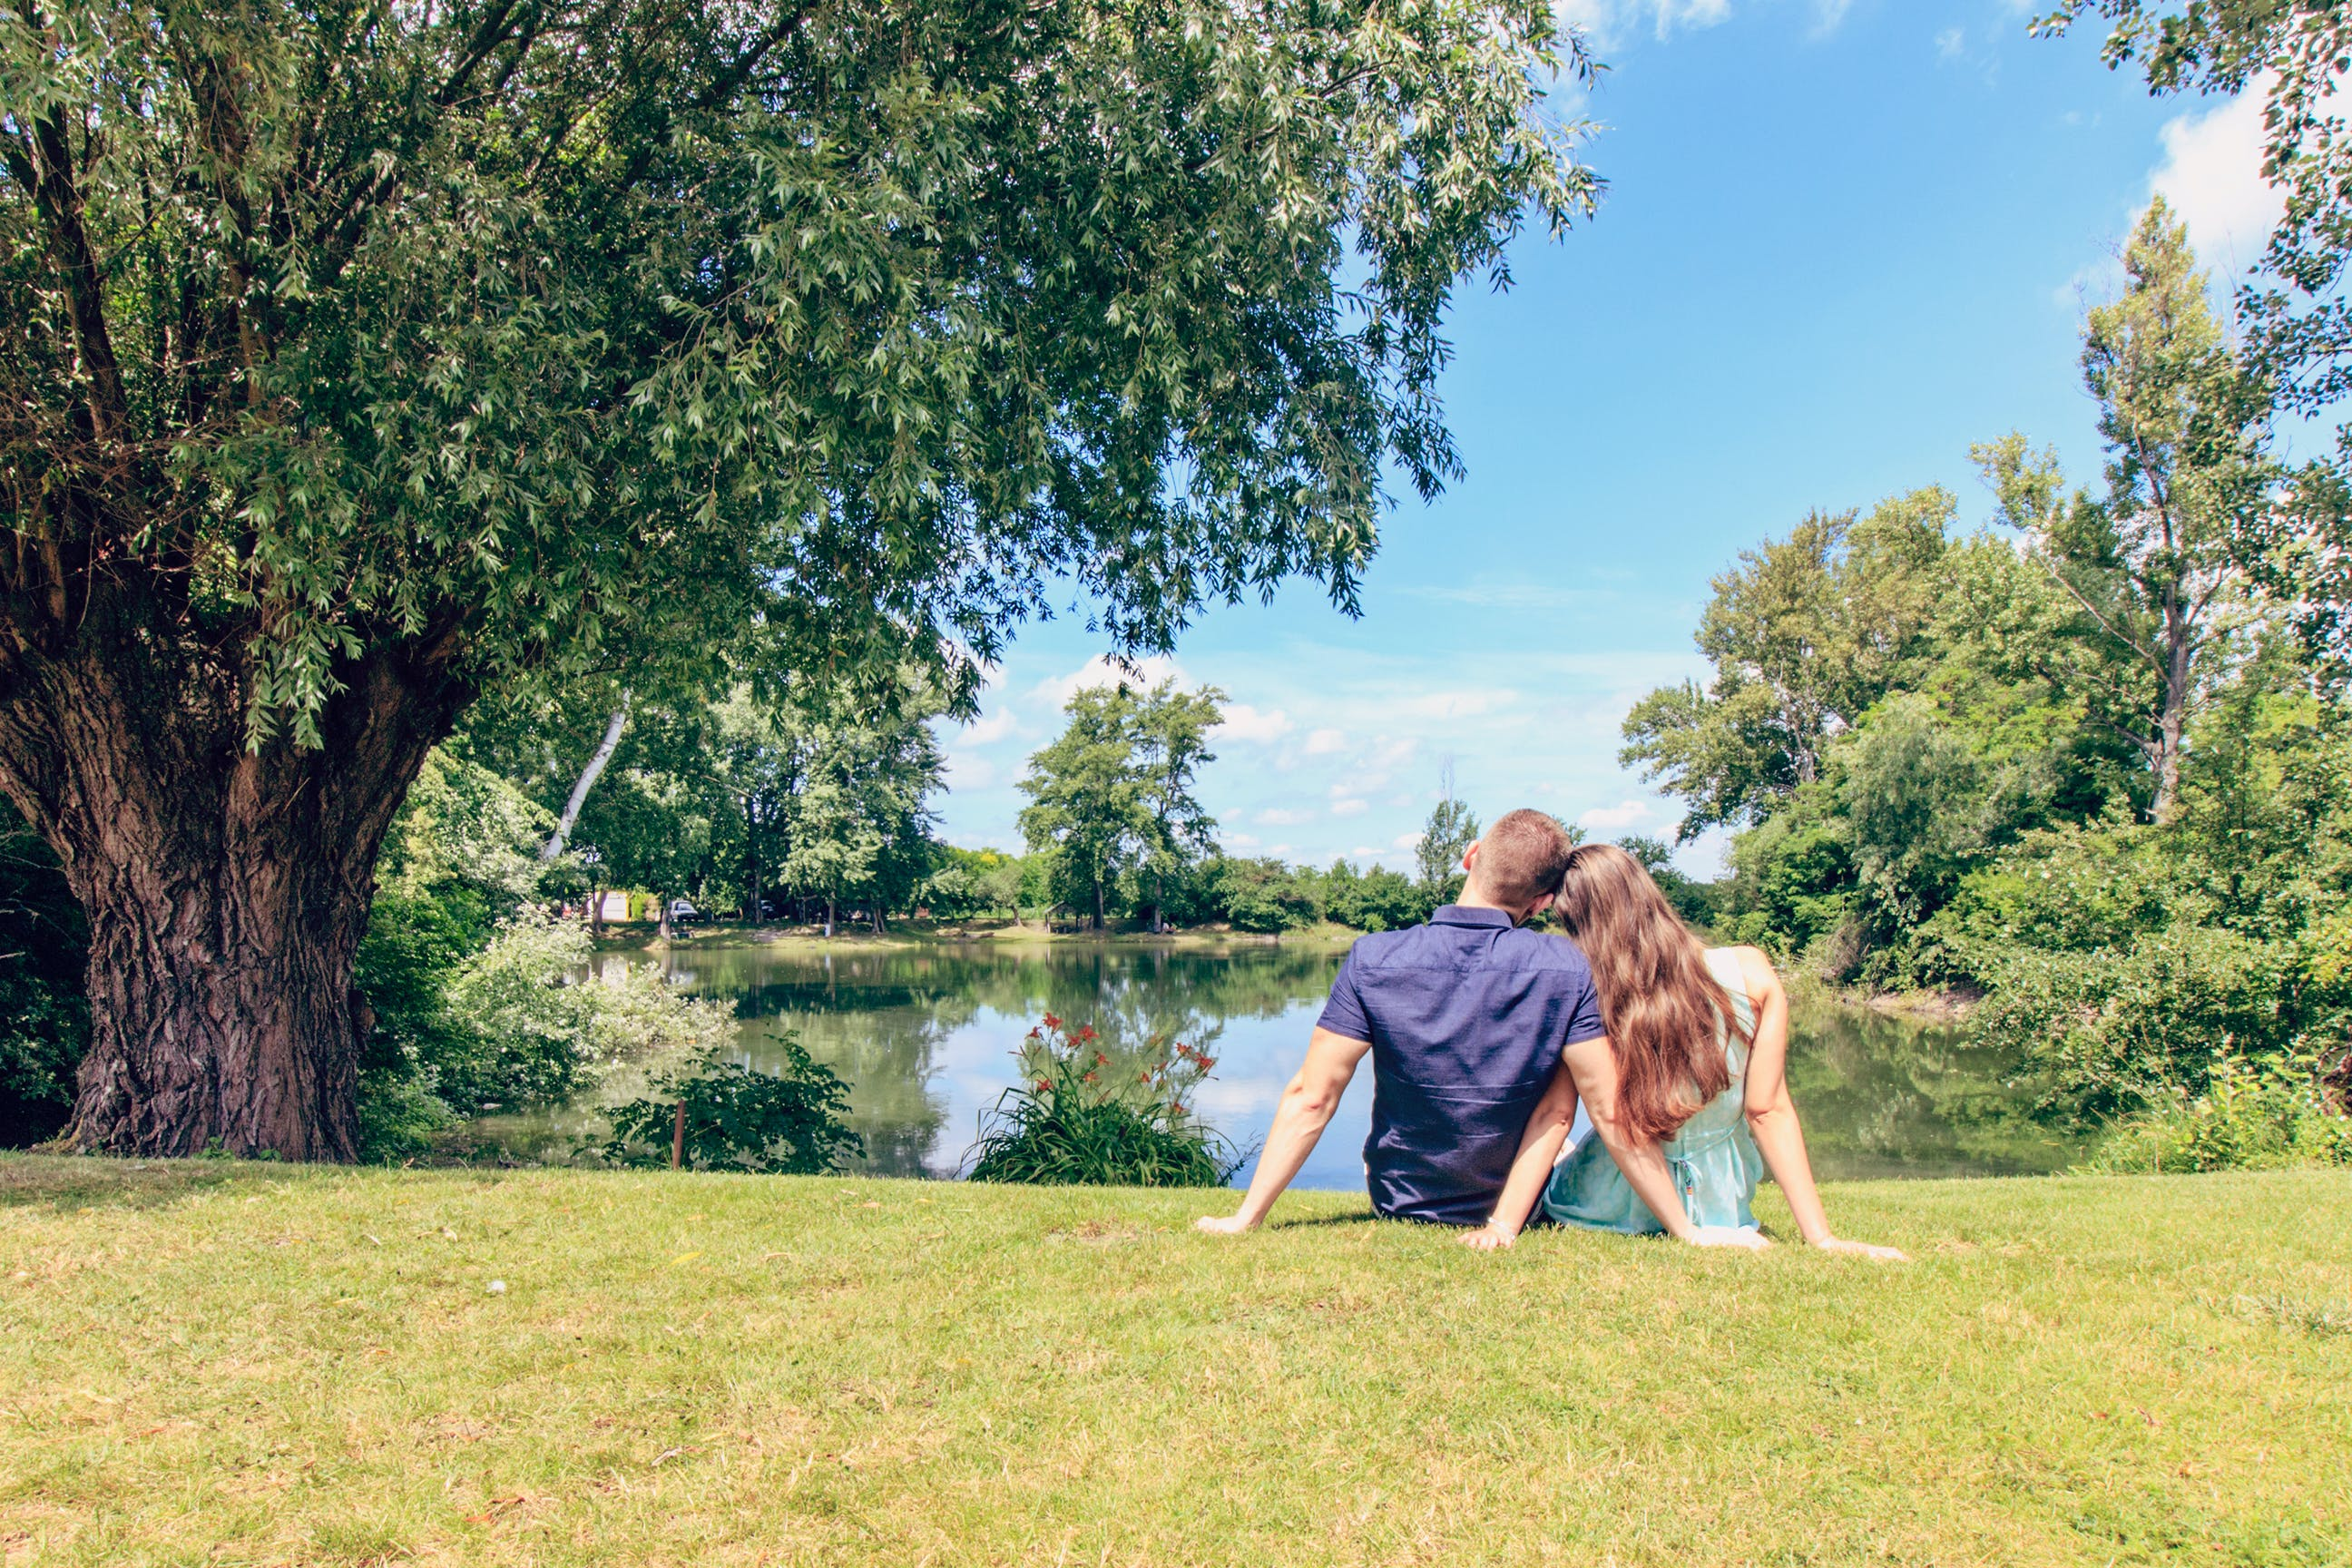 Couple Sitting on Grass Field in Front of Body of Water